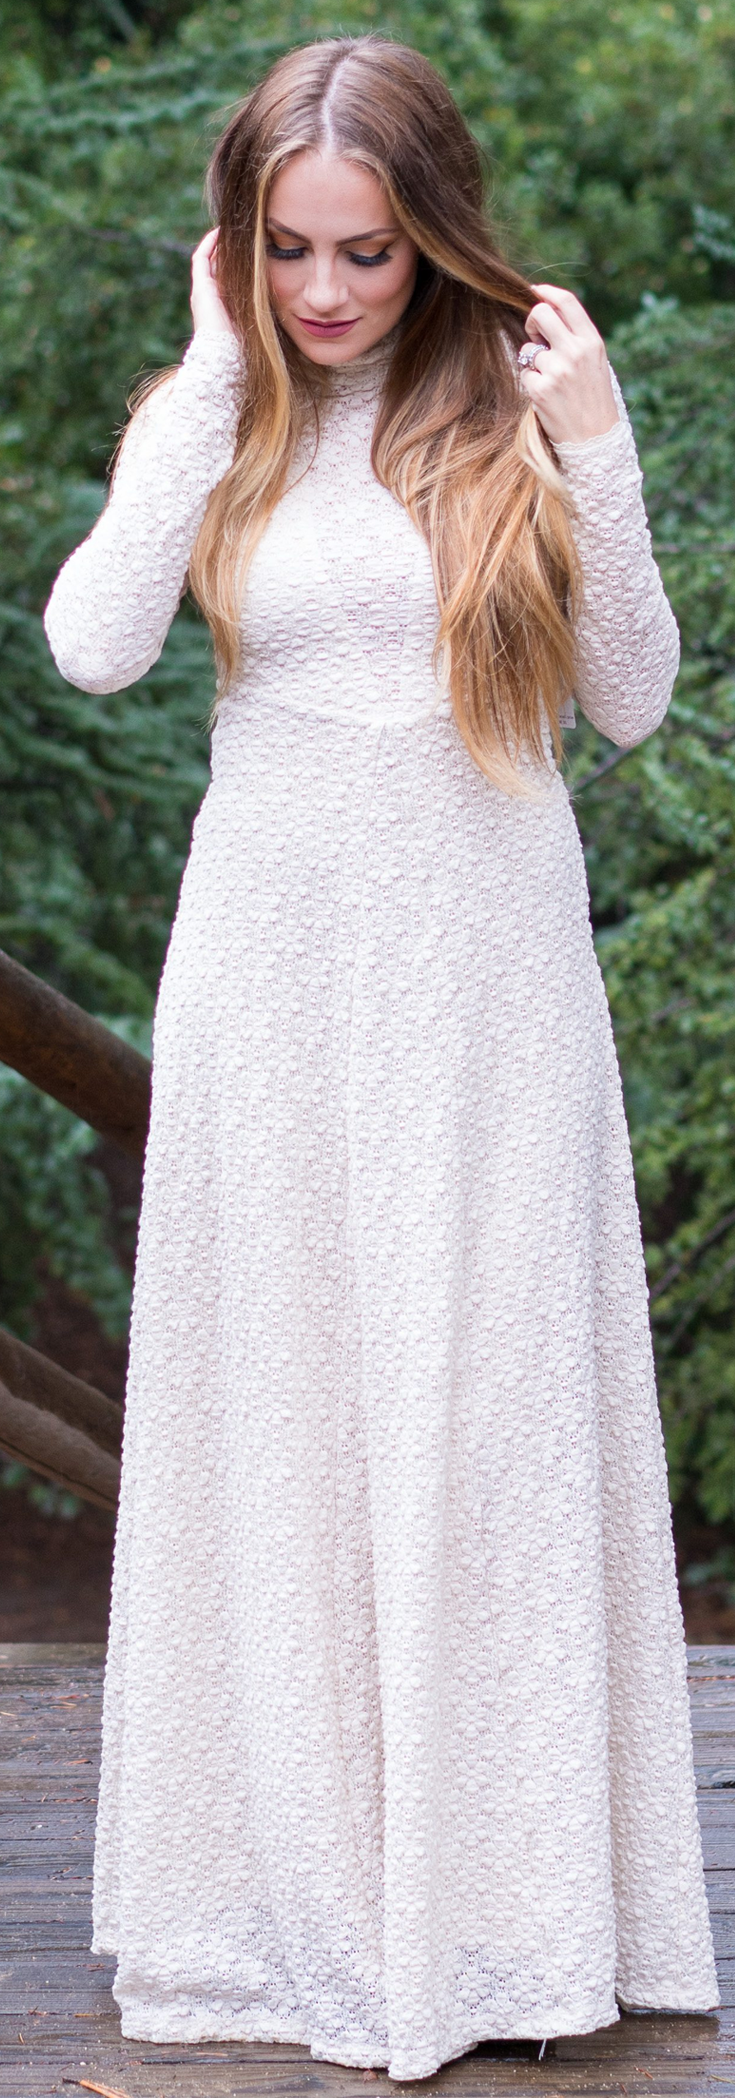 Bohemian New Year Outfit. Stunning long white dress.